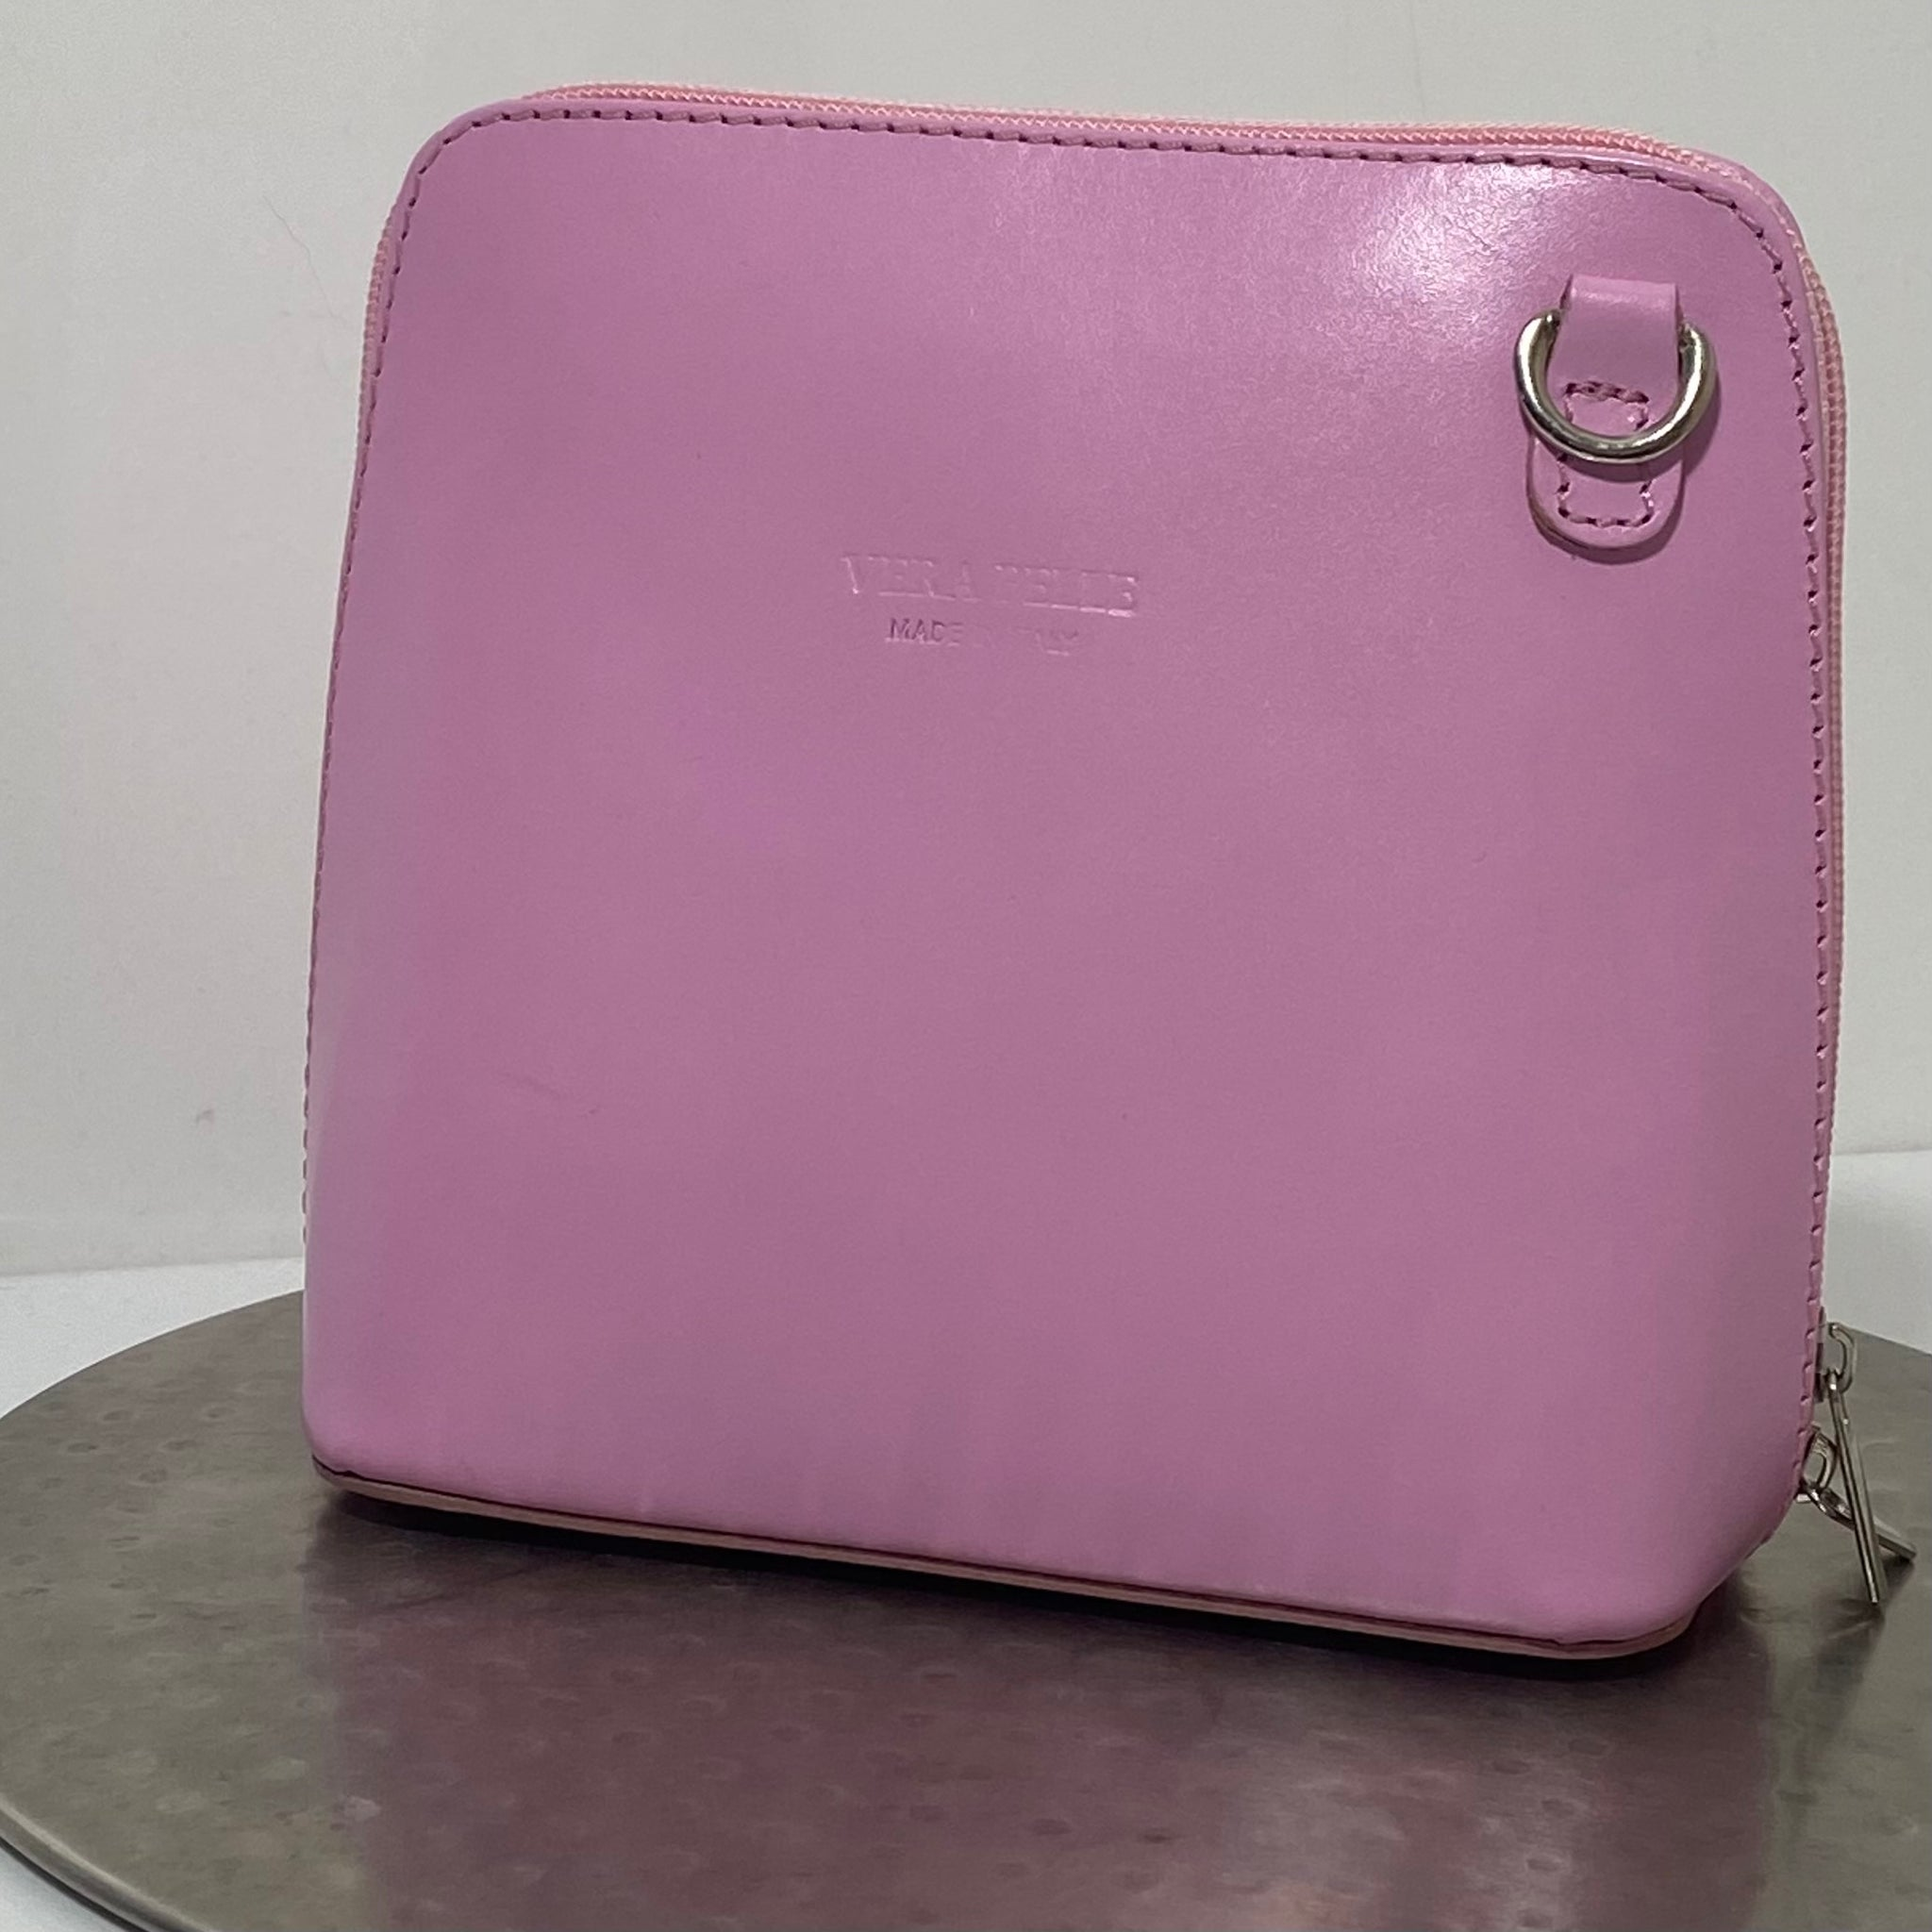 Pink cross-body leather bag